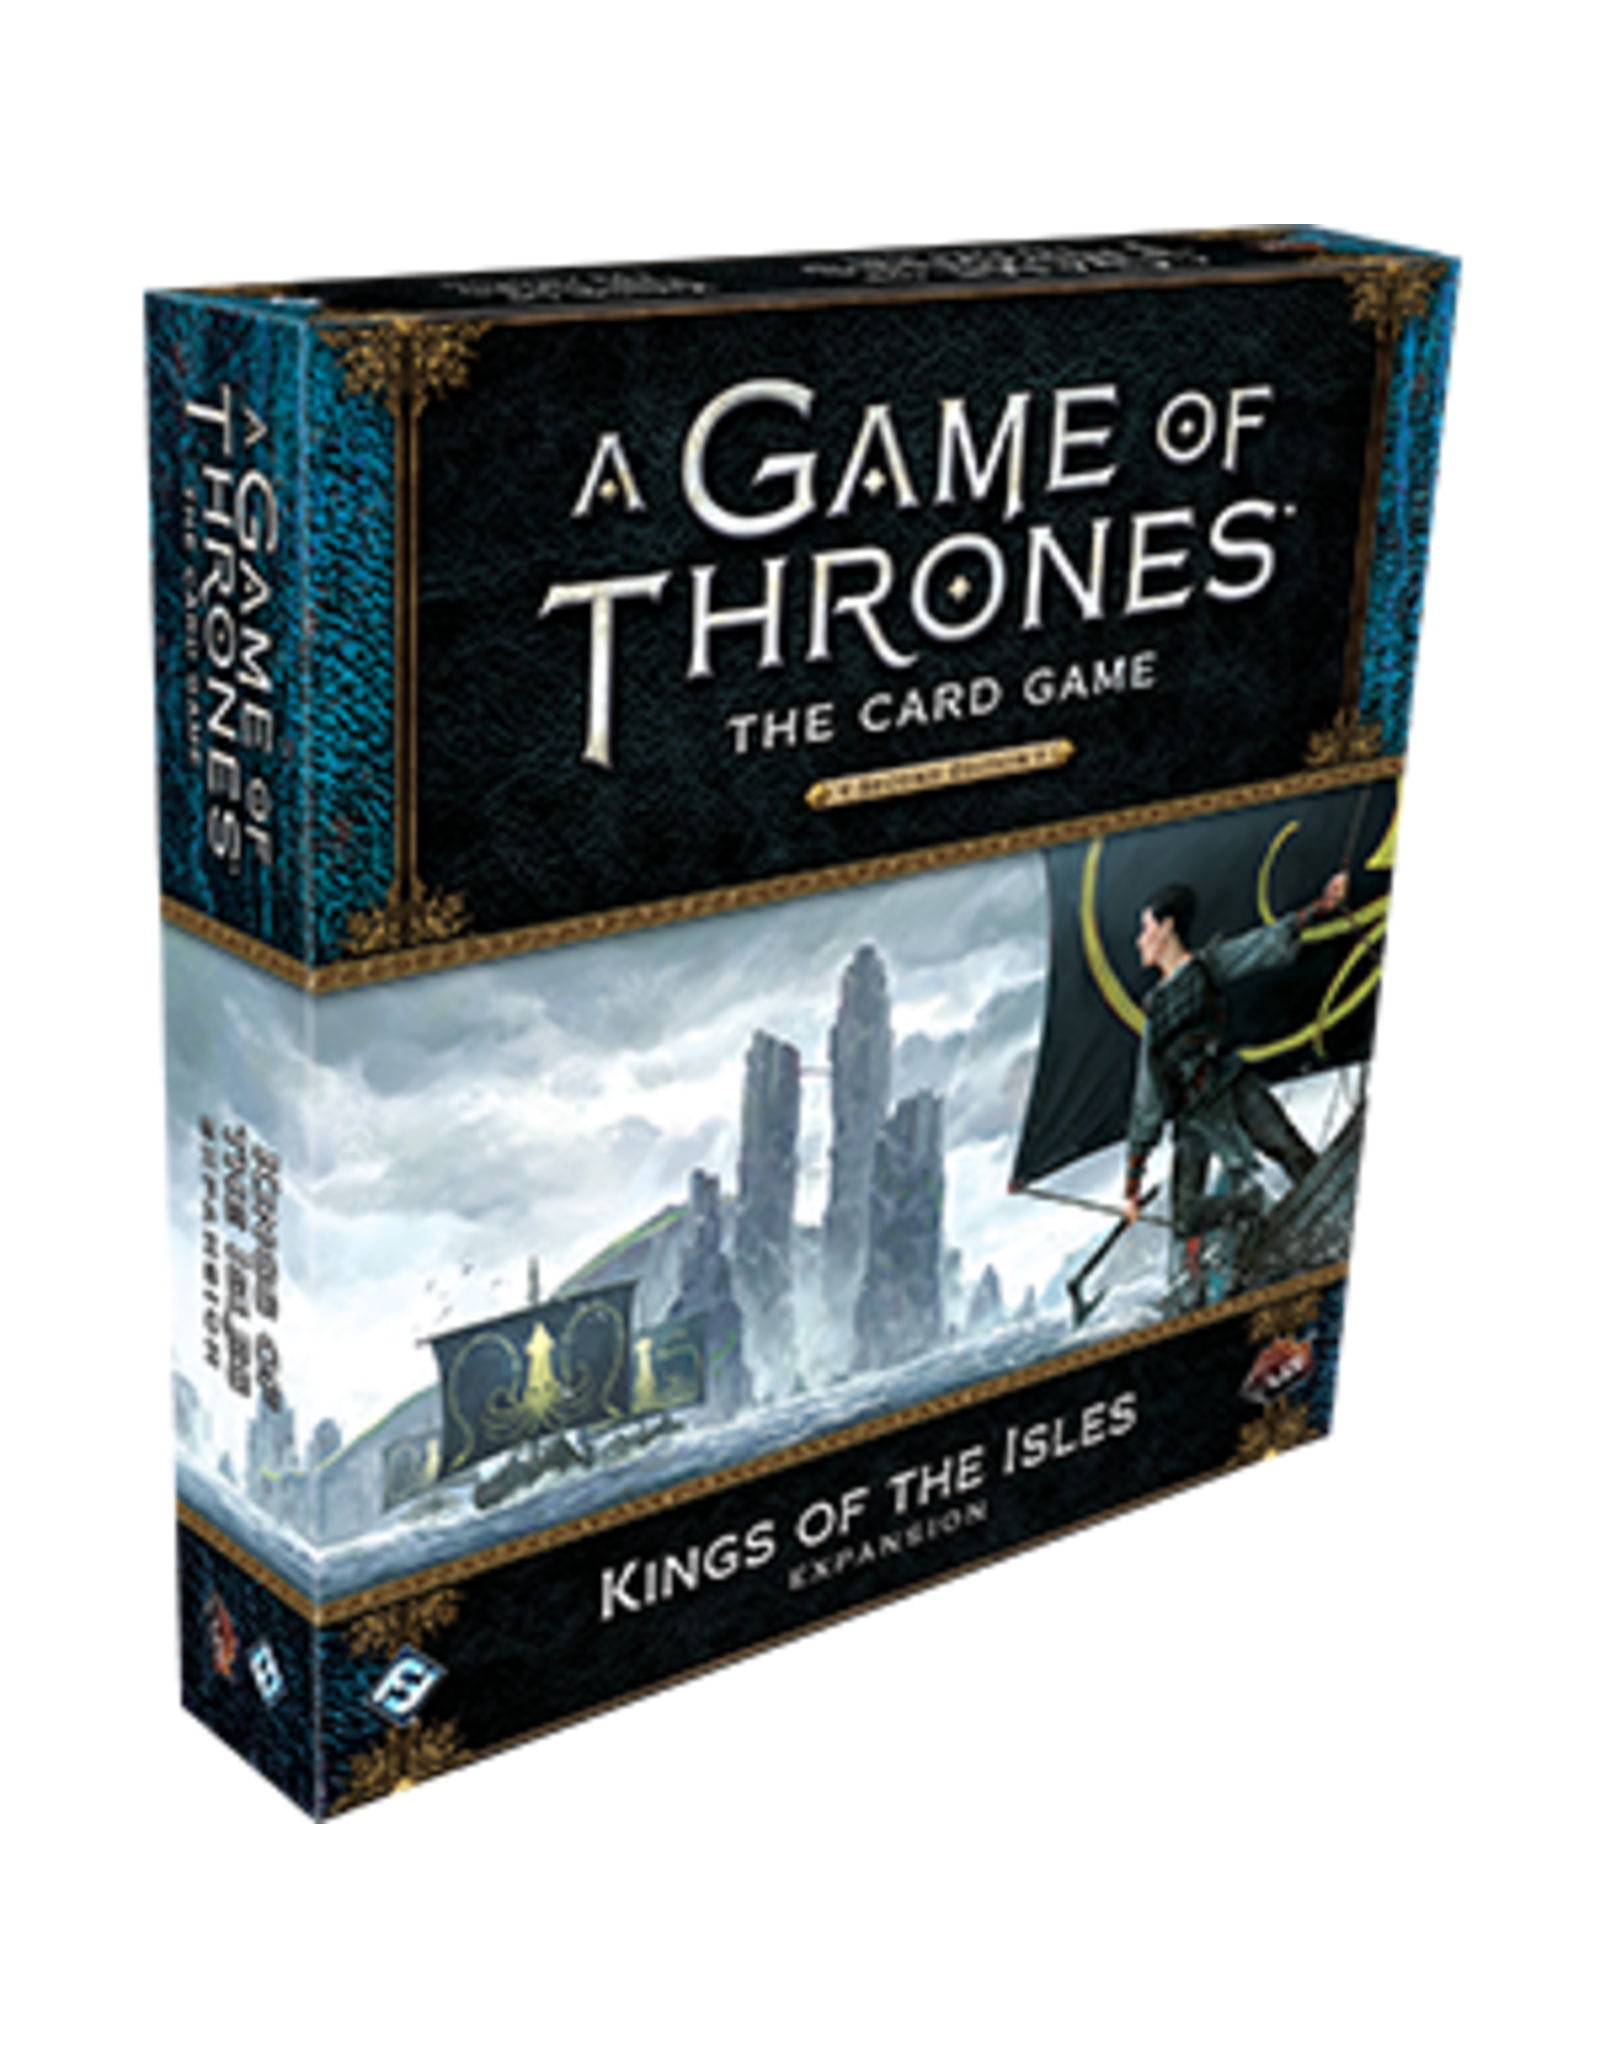 Game of Thrones LCG King of the Isles Expansion